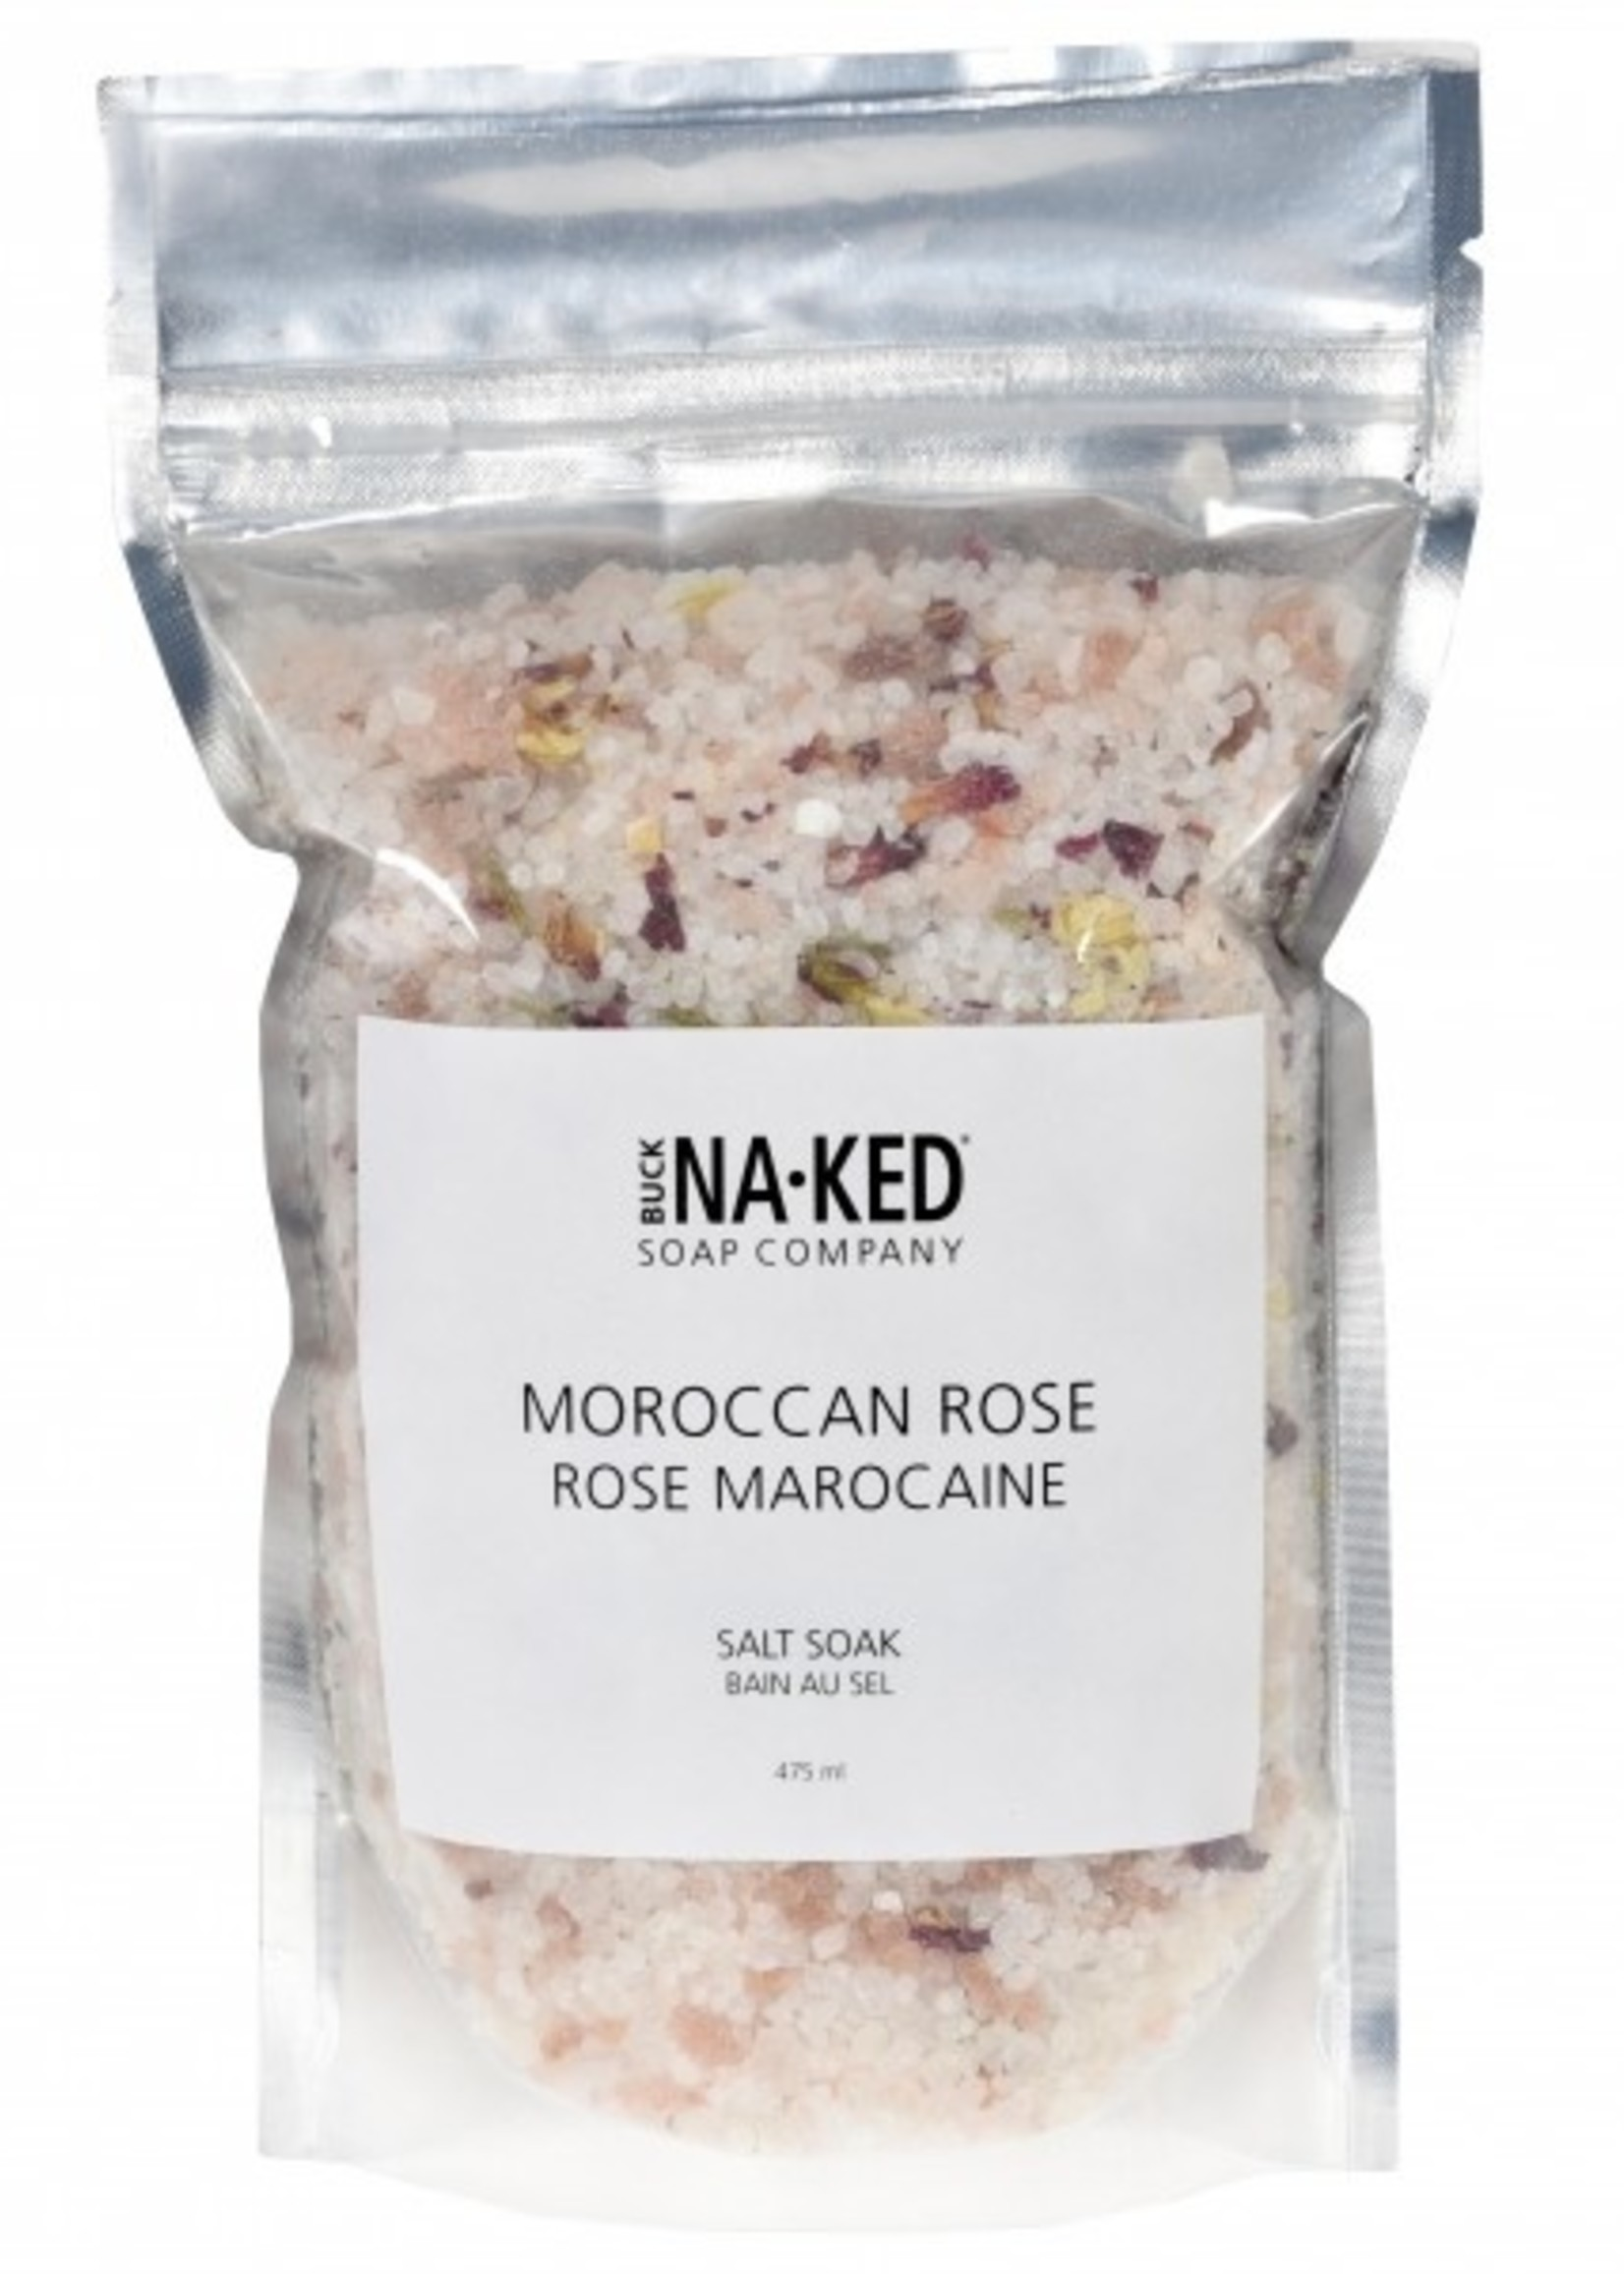 BUCK NAKED Moroccan Rose SALT SOAK